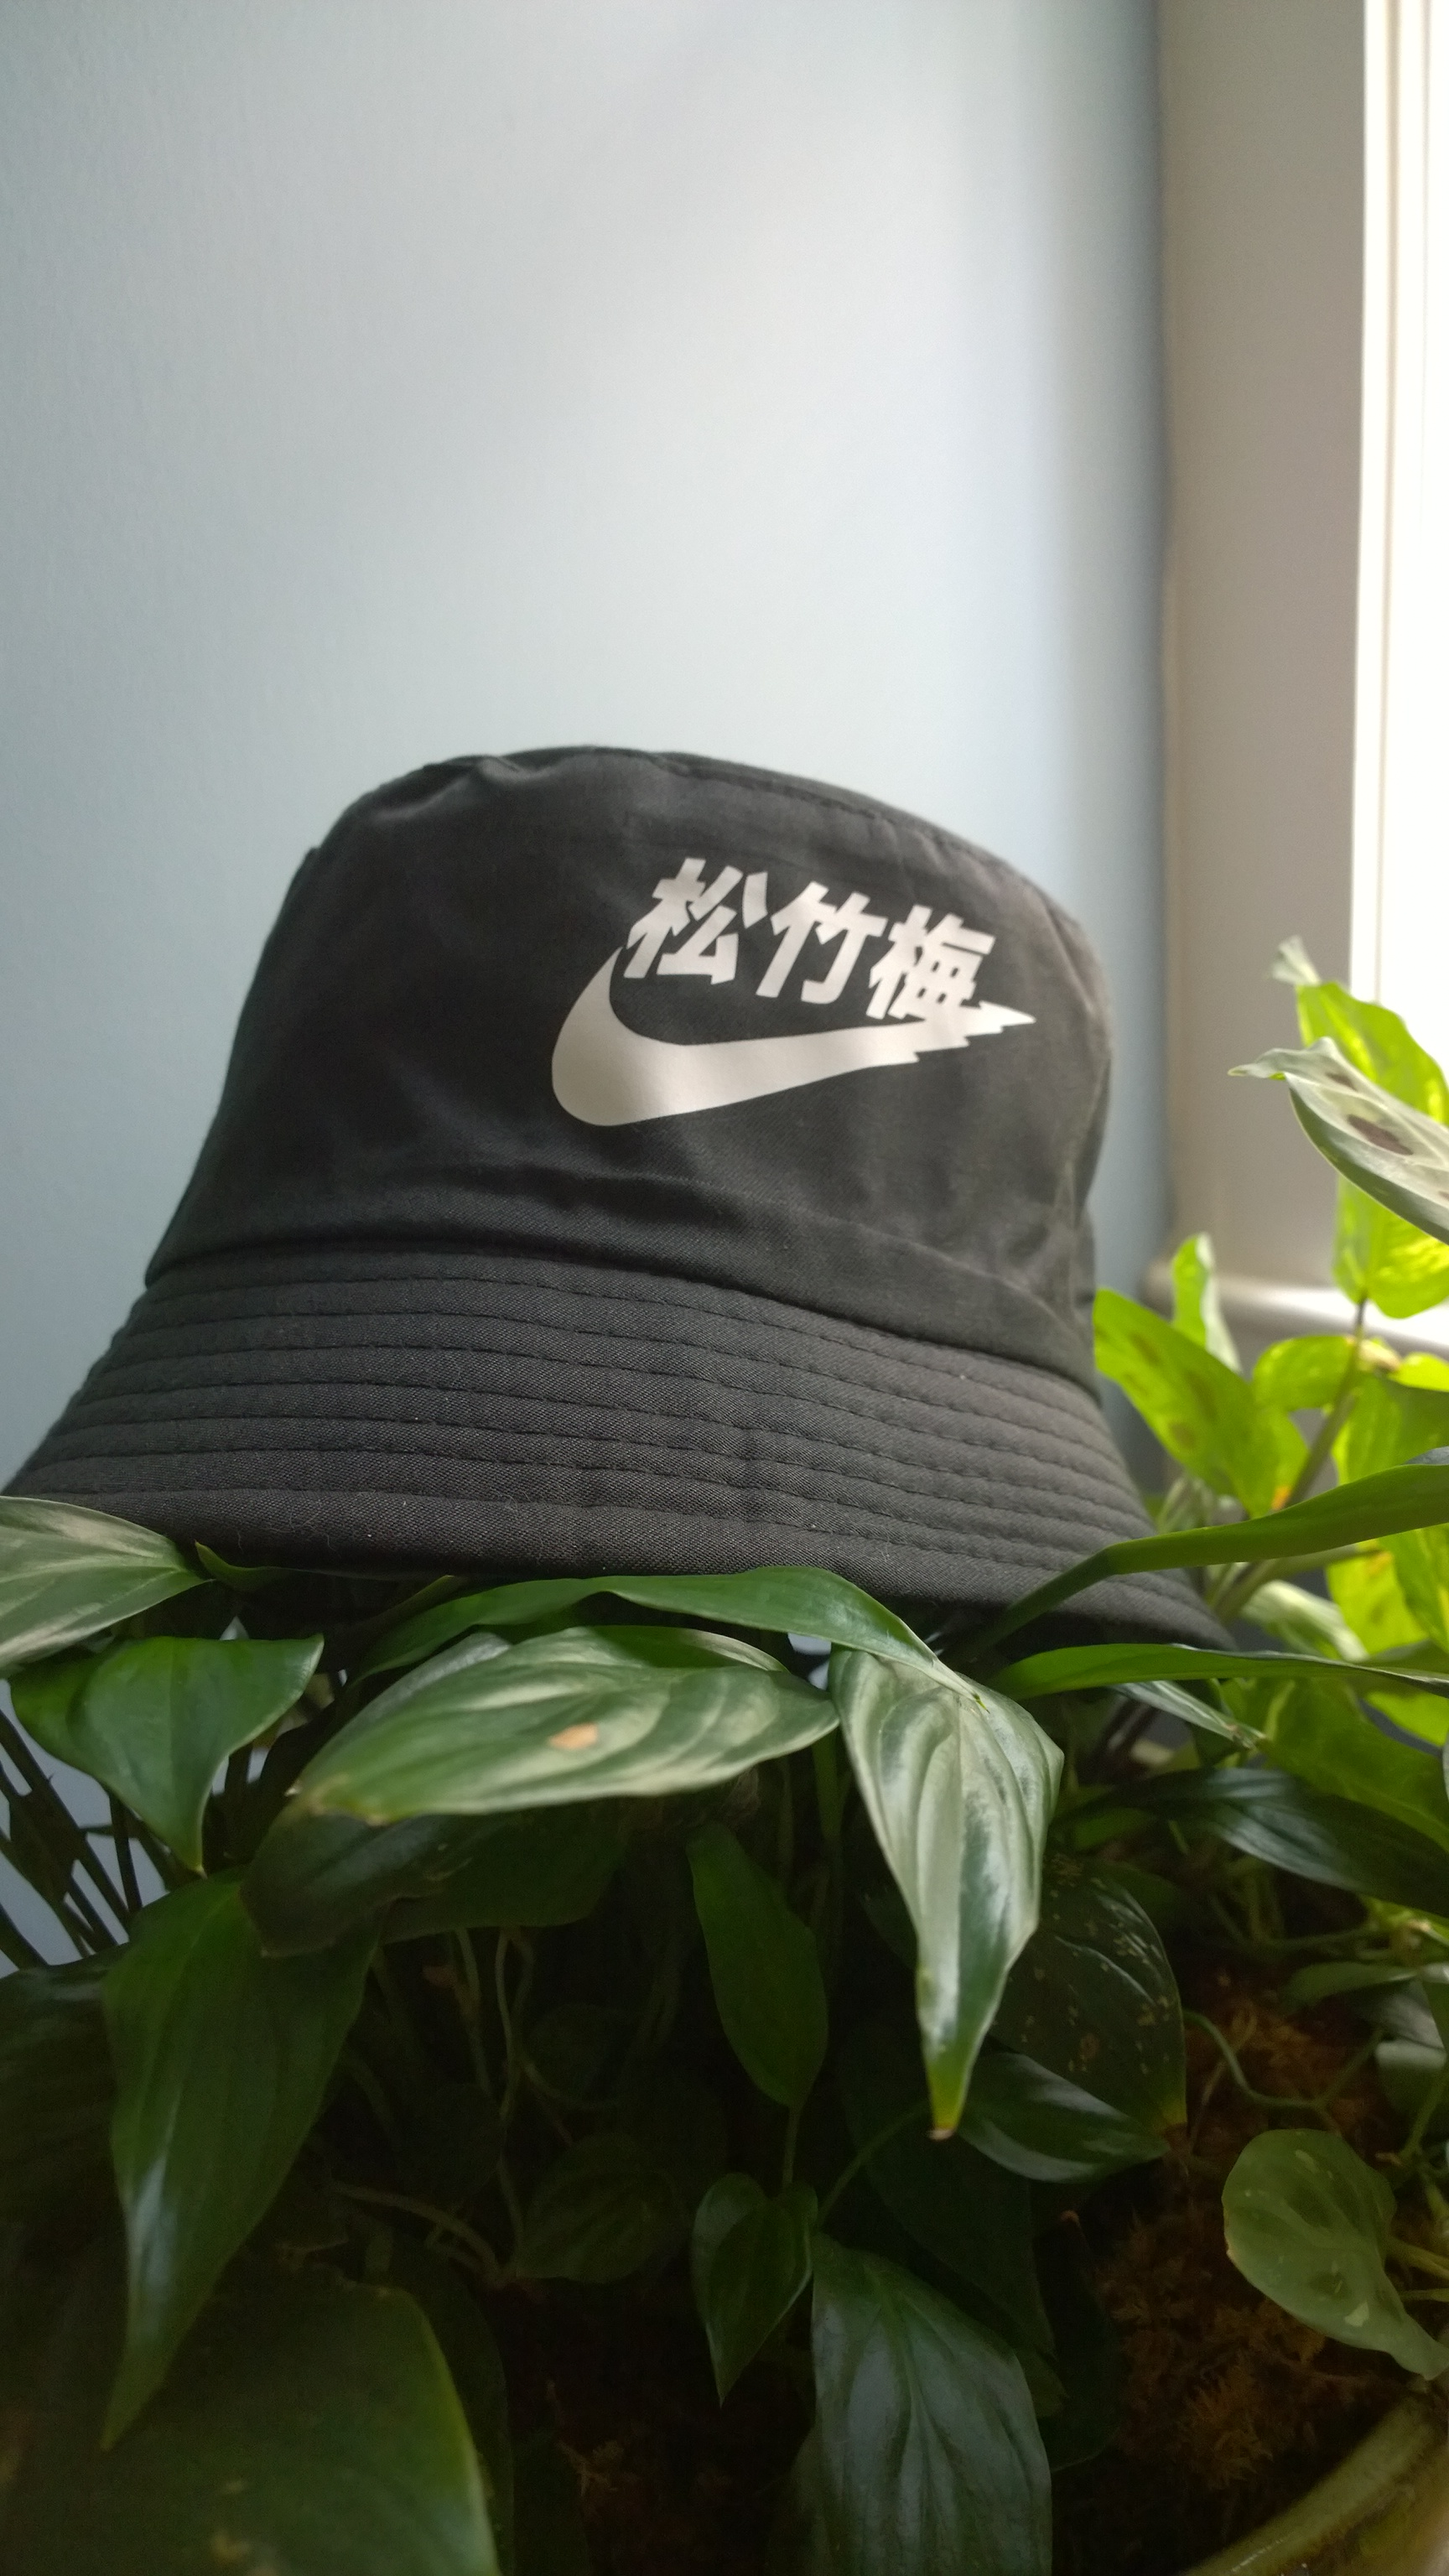 Nike Rare Air Bucket Hat Size one size - Hats for Sale - Grailed 90bc1f8c7e8